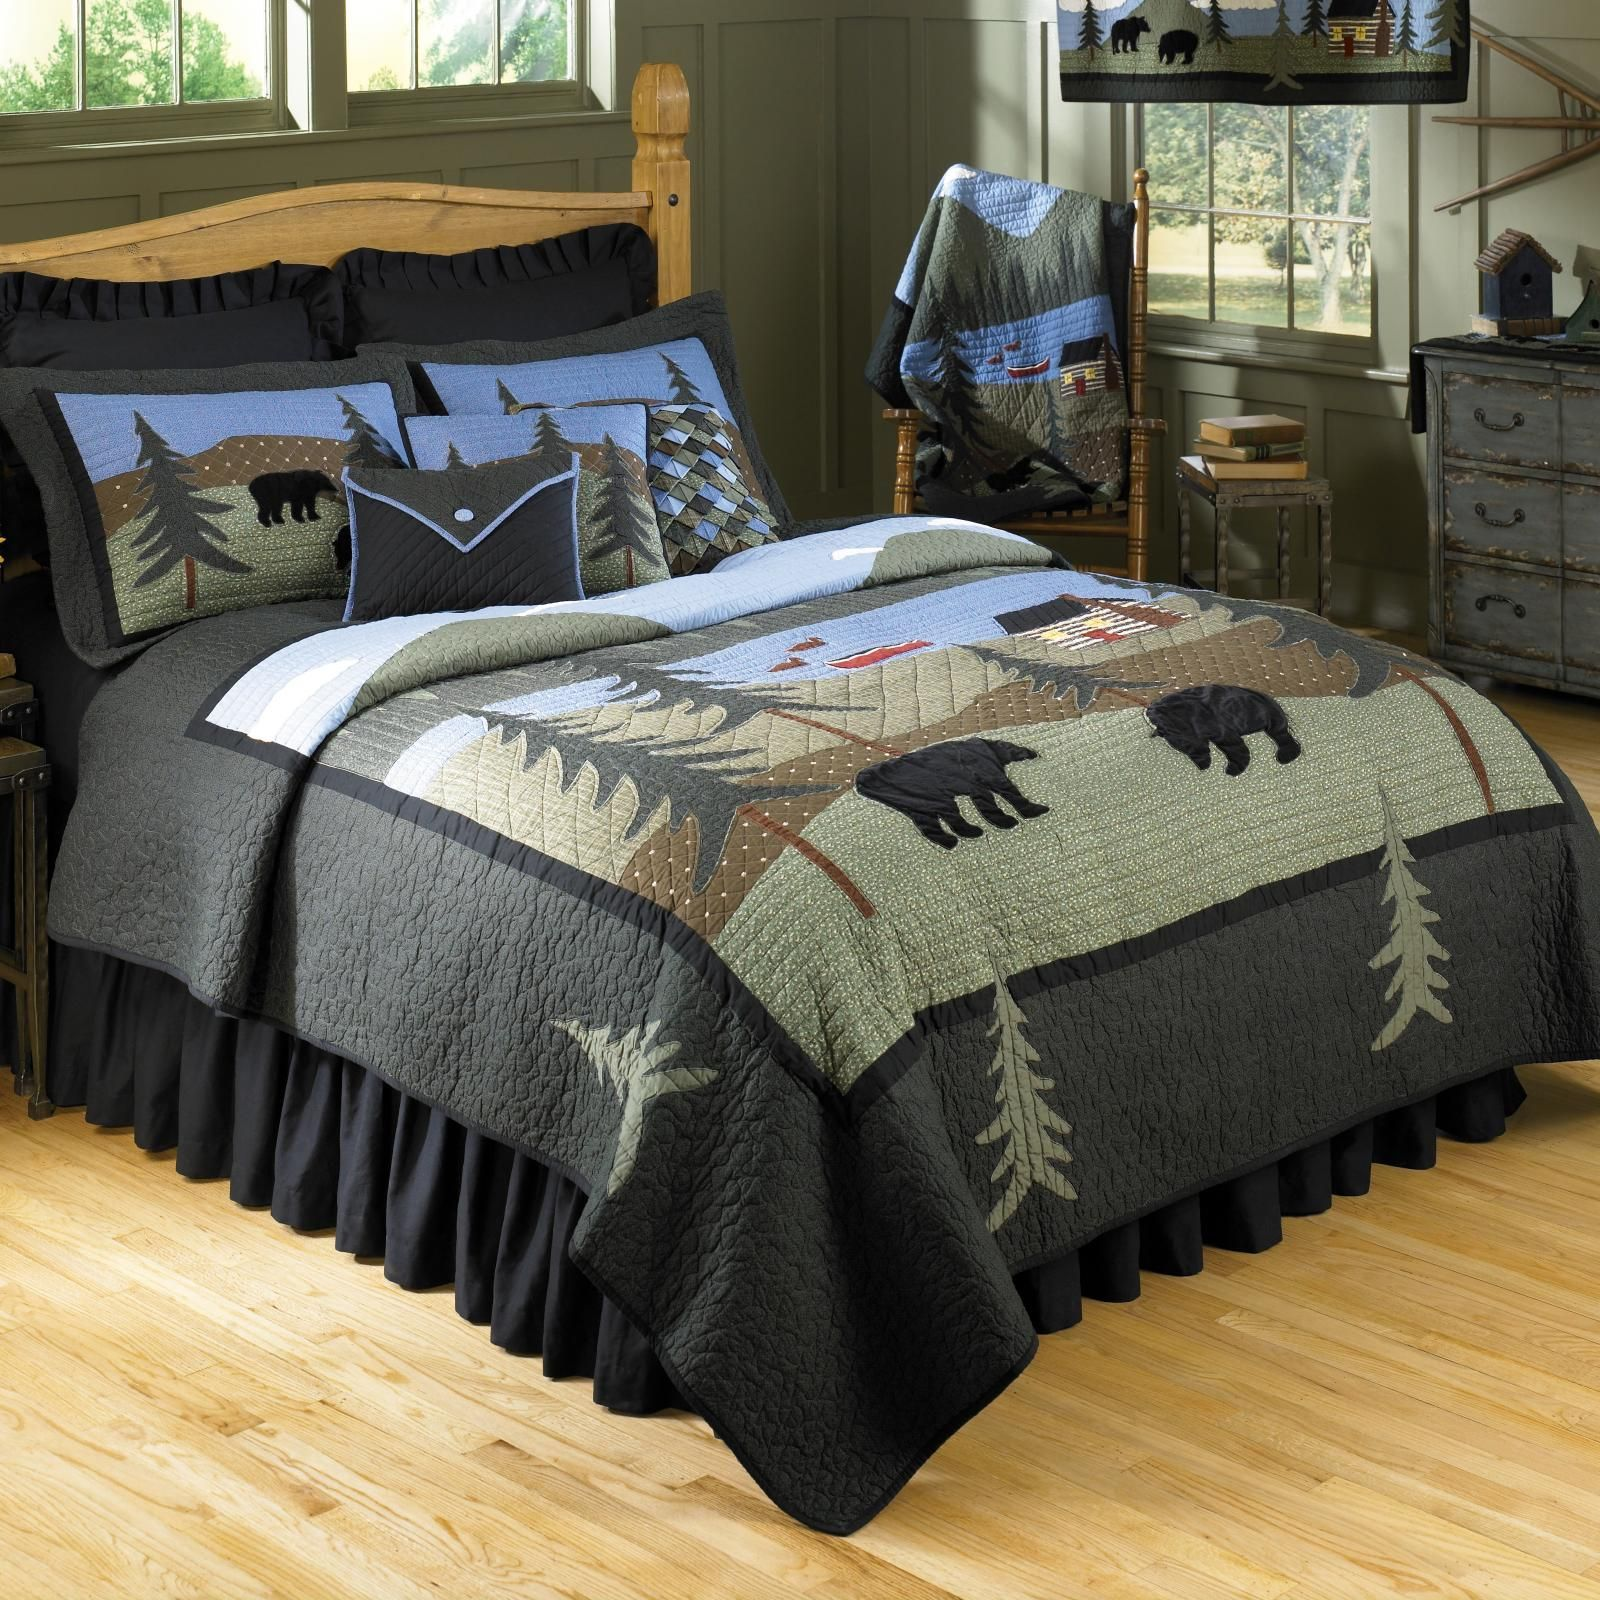 american king quilt imposing hometex blue fishermans decor cabins bedspreads rustic full intriguing seaview home comforters cabin zq bedroom class bedding black forest queen swanky size touch wharf setlight quilts coastal